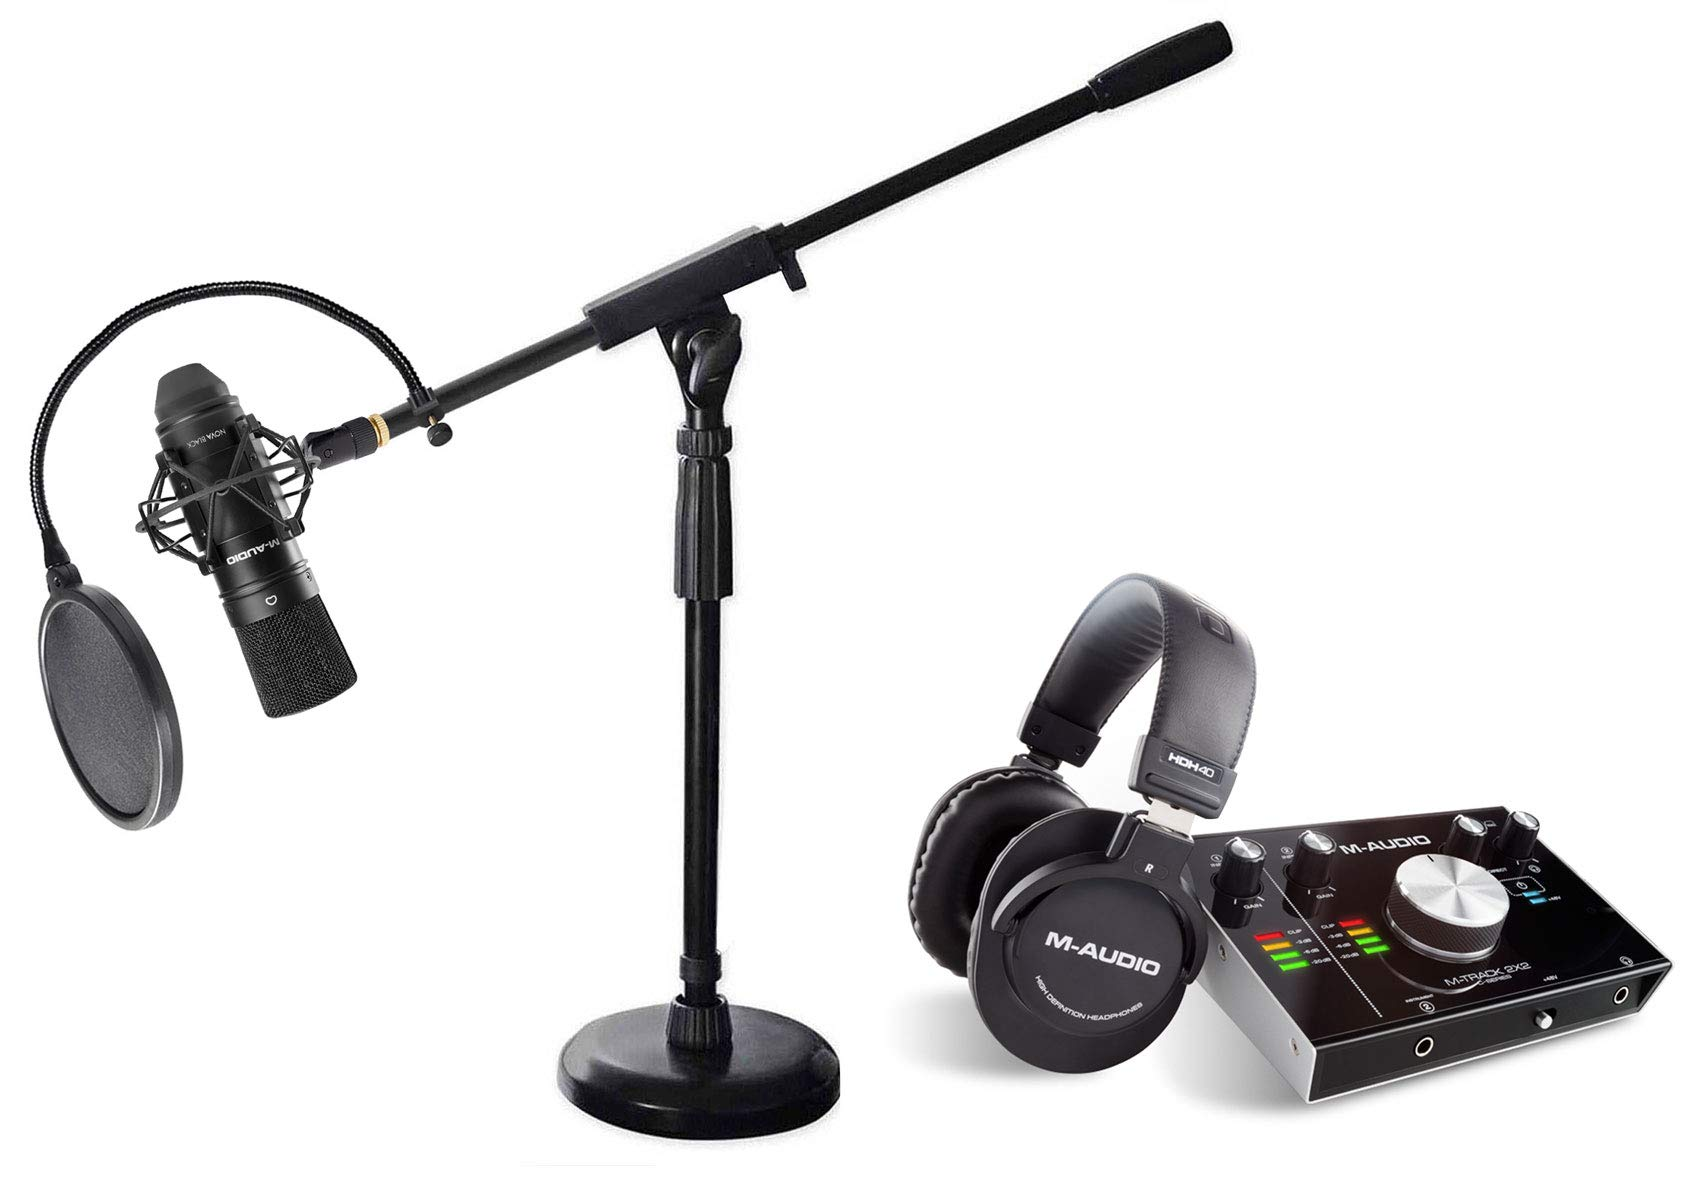 M-Audio MTRACK Podcast Podcasting Kit Headphones+Interface+Mic+Desk Boom Stand